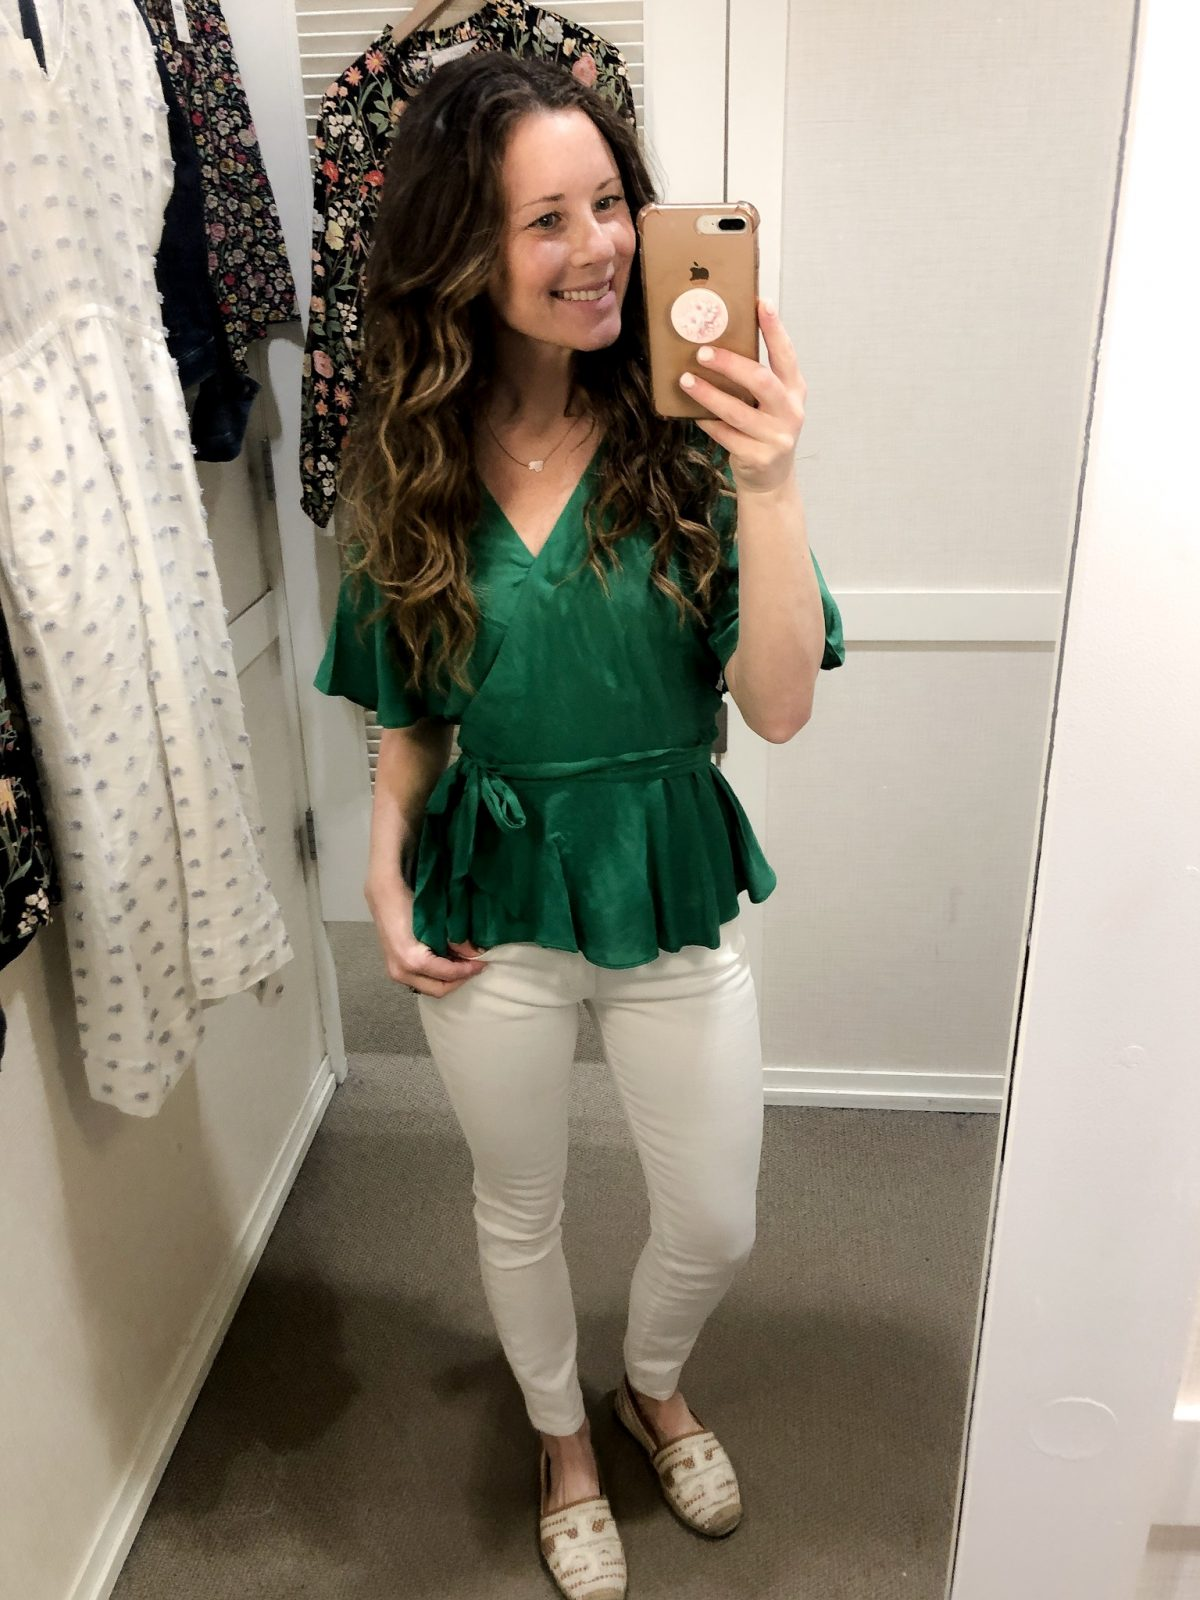 Green Wrap Top with White Cropped Denim and Tan Tory Burch Espadrilles White Floral Flowy Long Sleeve Top and Gray Cropped Pants with Eyelet Hem on Woman at LOFT Confessions of a Northern Belle